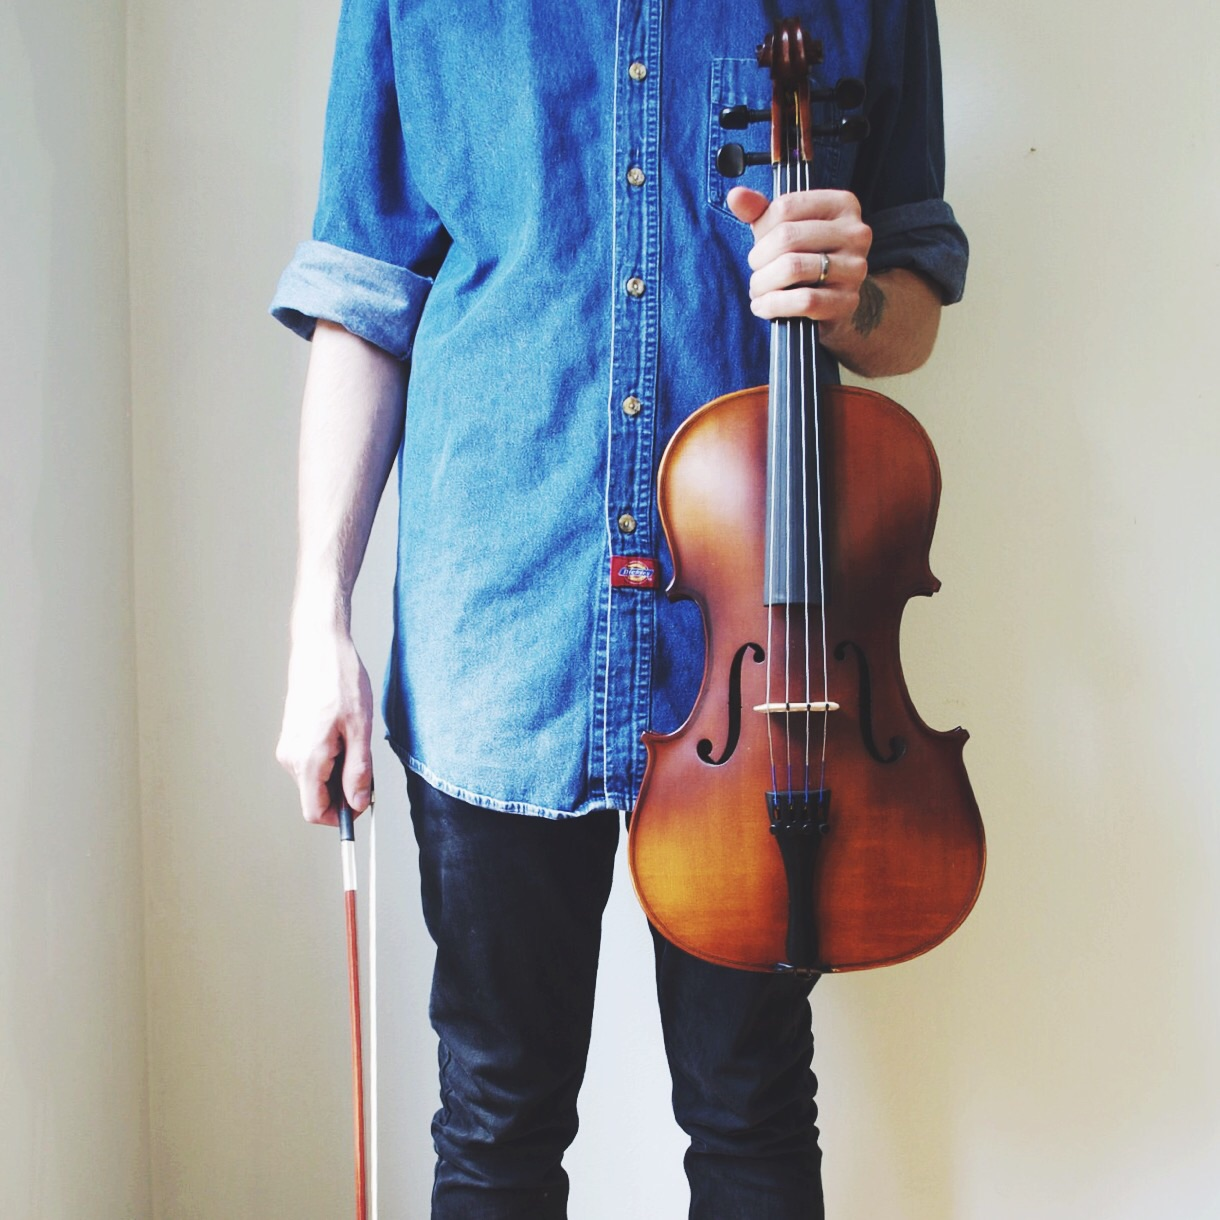 Collin holding one of his prized possessions: his beloved  viola .